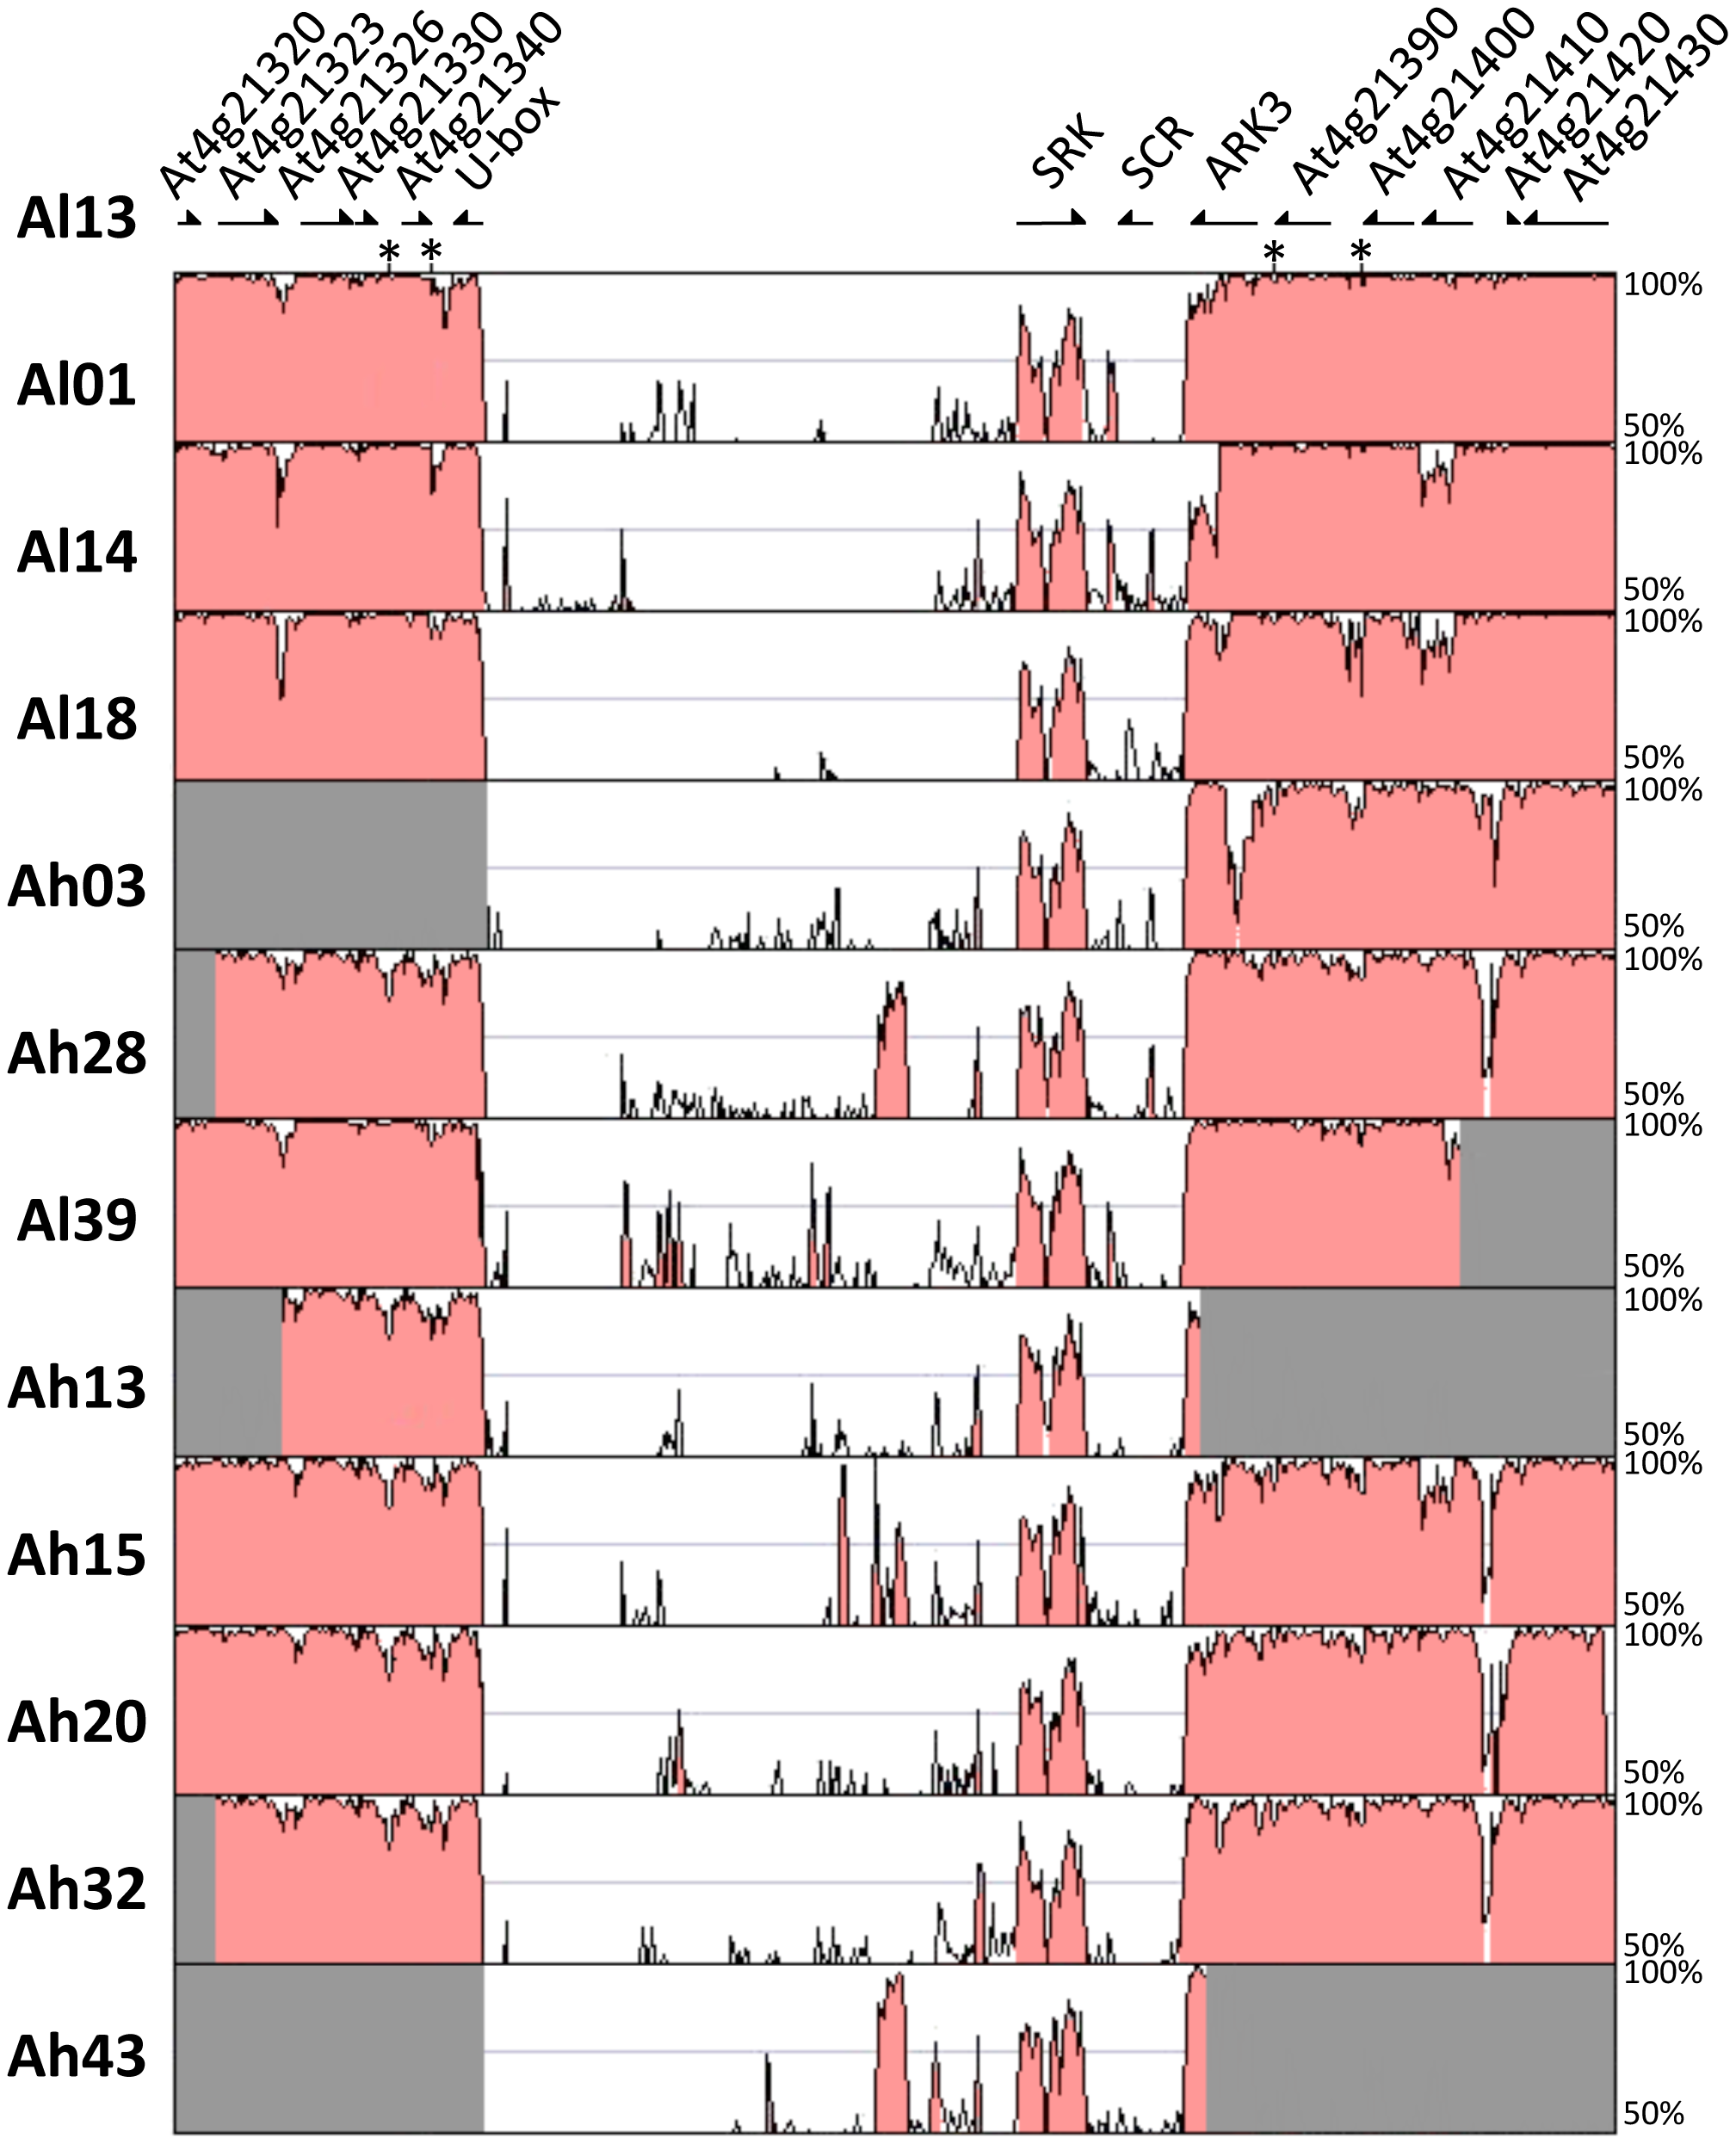 Sequence conservation in the S-locus region between <i>Al13</i> (the reference <i>A. lyrata</i> genome) and each of the other haplotypes.